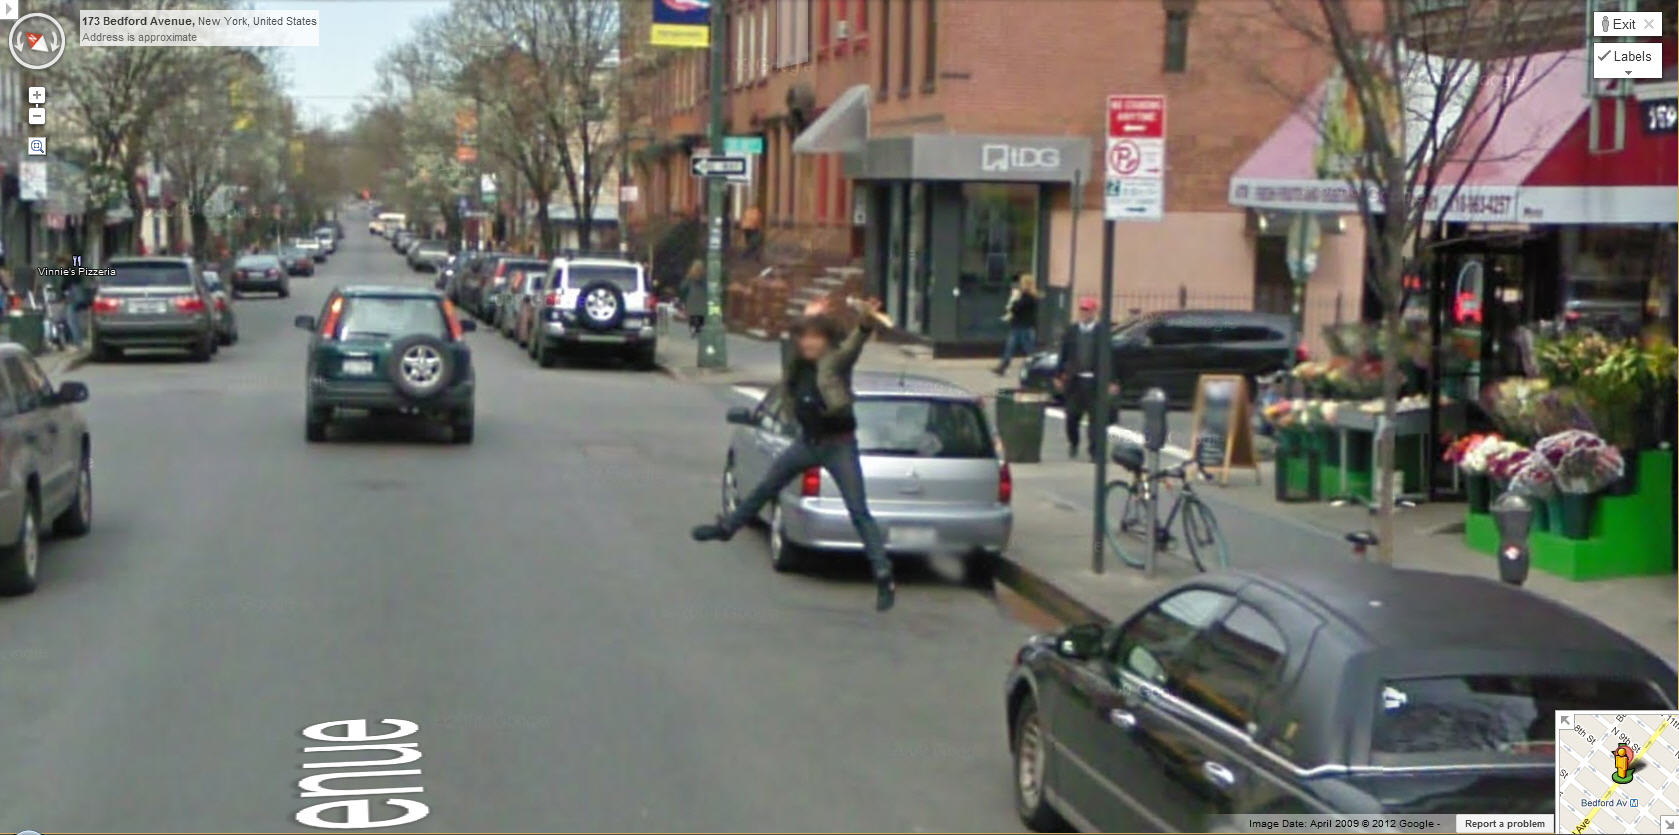 google-street-view-captures-a-flying-girl-in-new-york